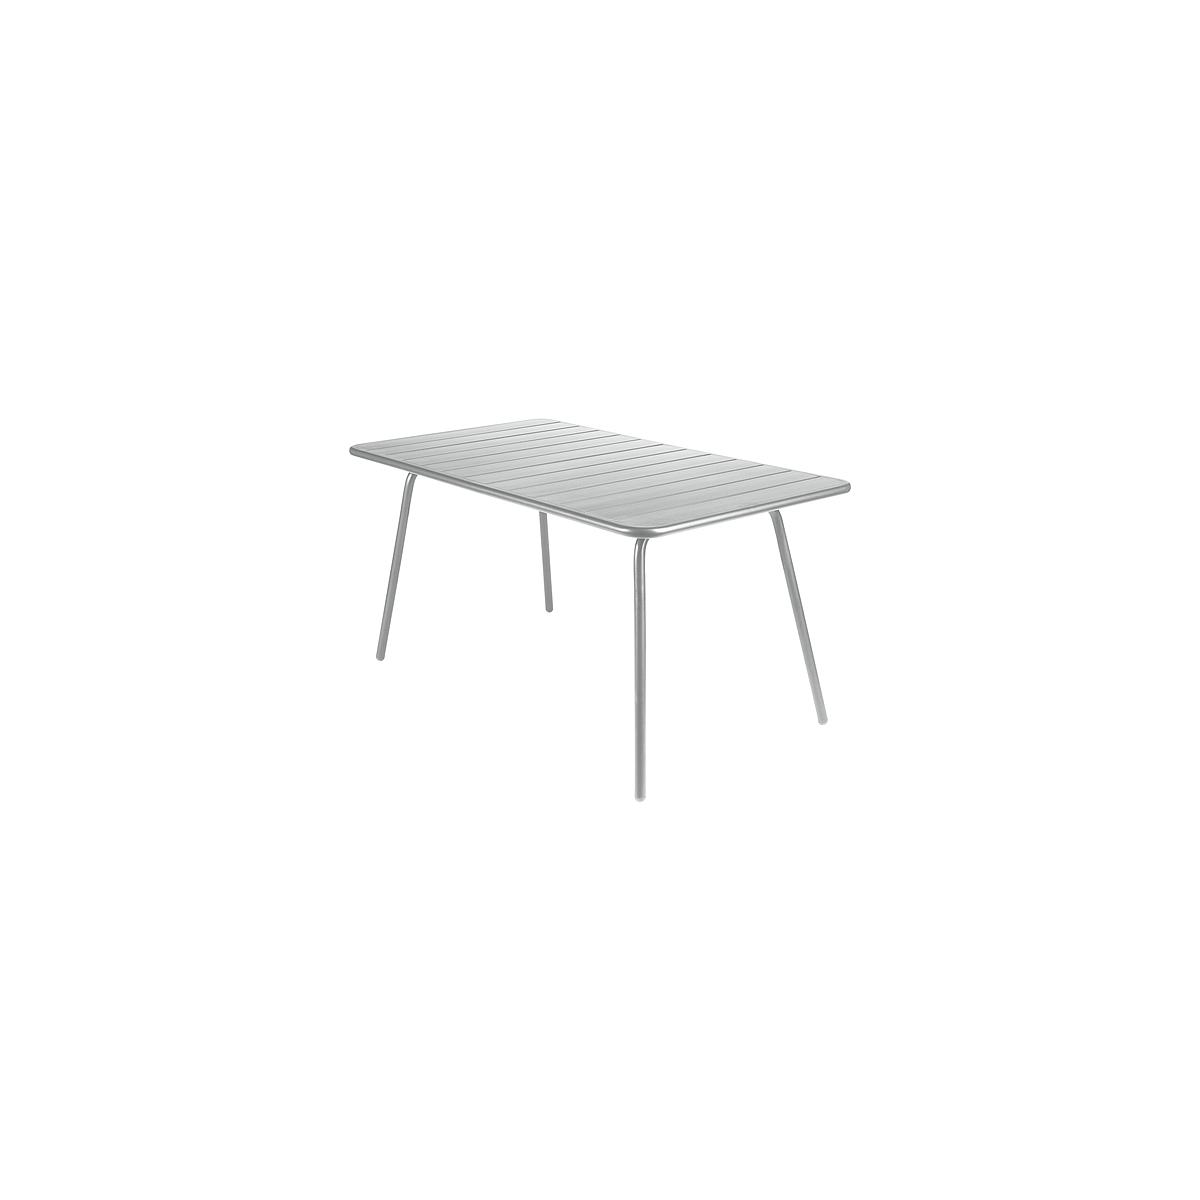 LUXEMBOURG by Fermob Table 143x80 cm gris métal